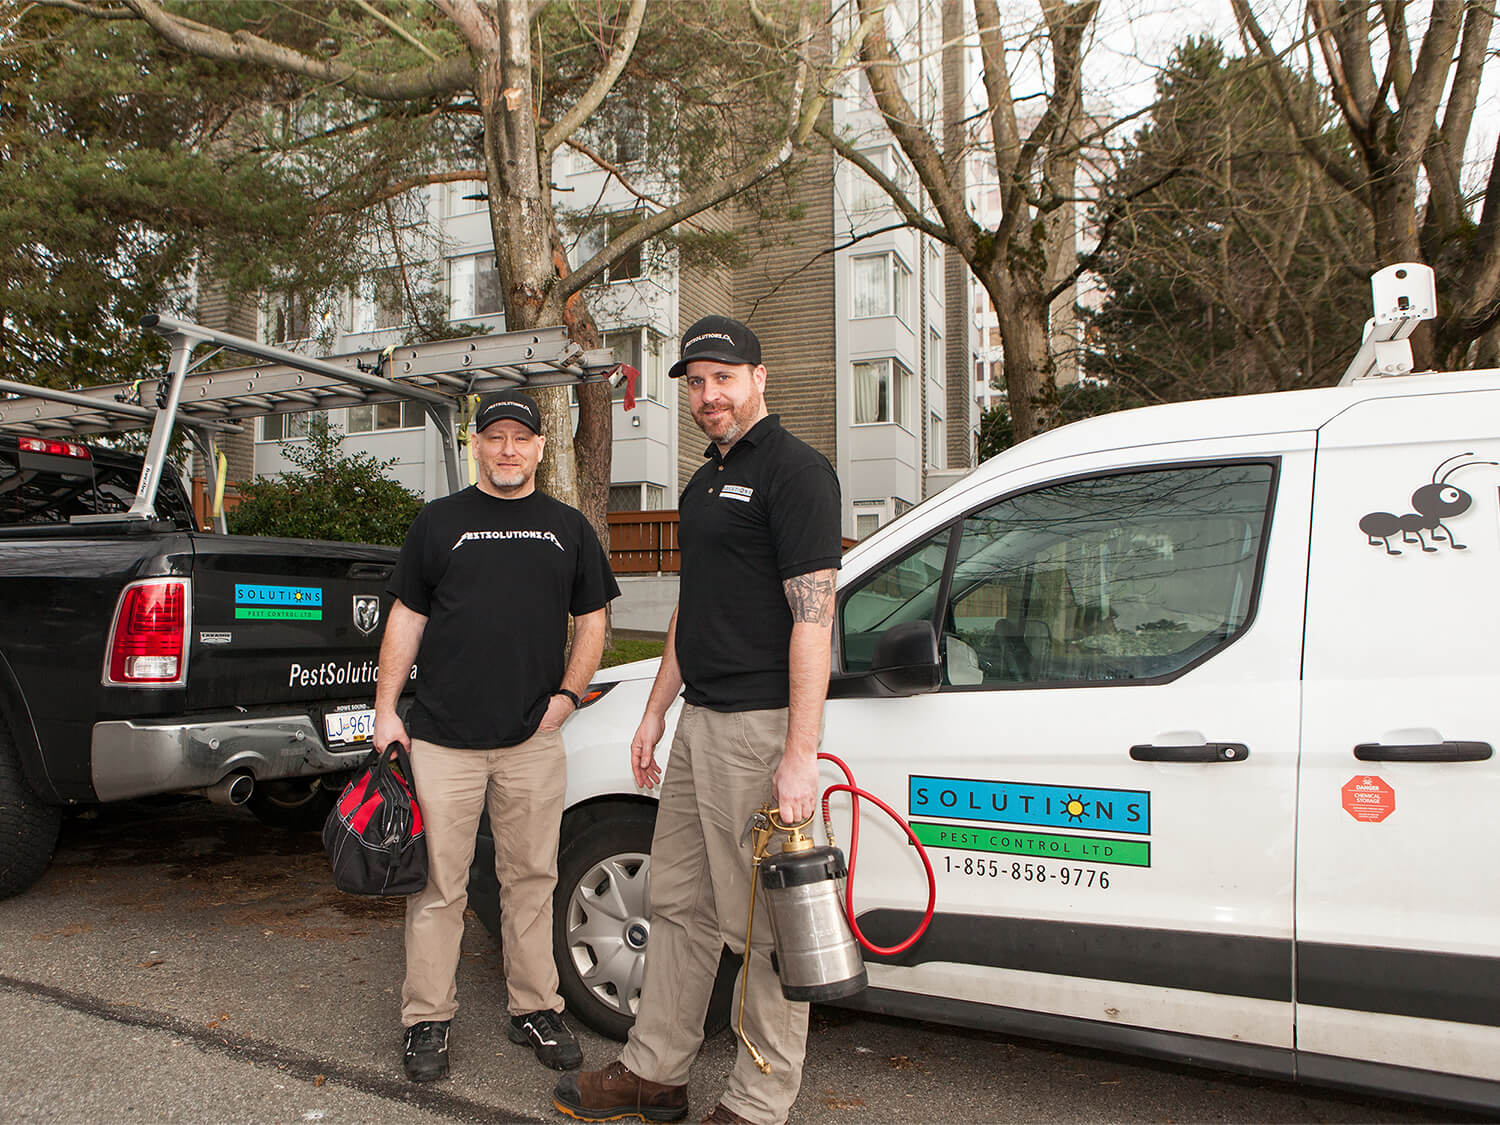 Pest Control Vancouver North Shore Squamish Whistler Solutions Pest Control